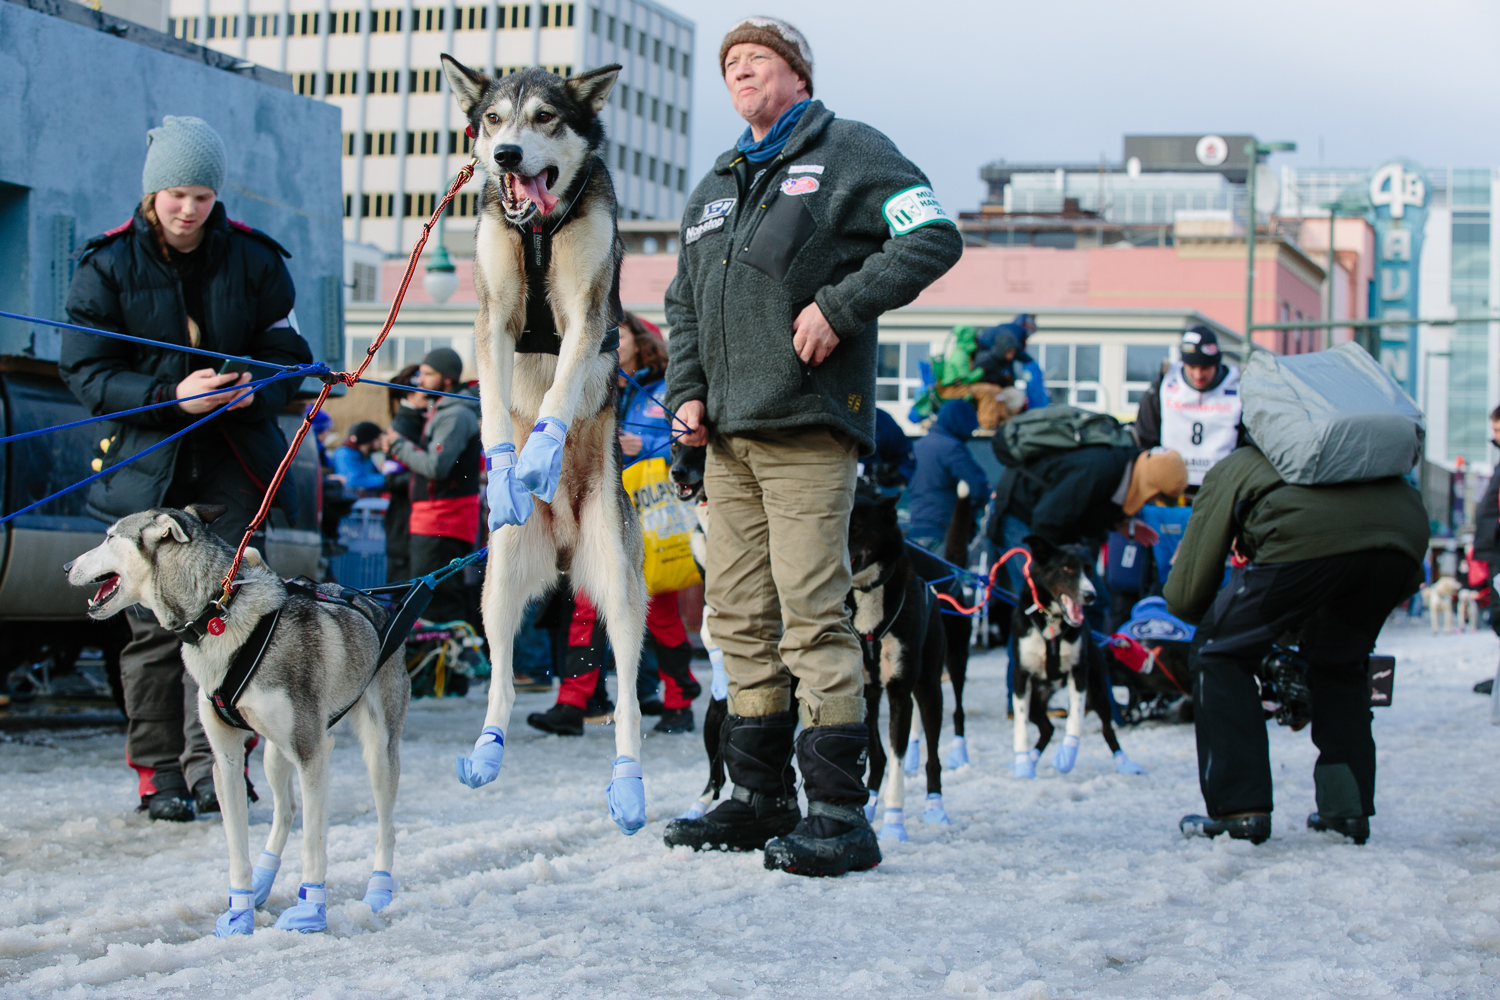 Dogs of musher Thomas Waerner of Norway (bib #8) leap excitedly in the air waiting for their turn to start down fourth avenue in downtown Anchorage Alaska on March 7, 2015.